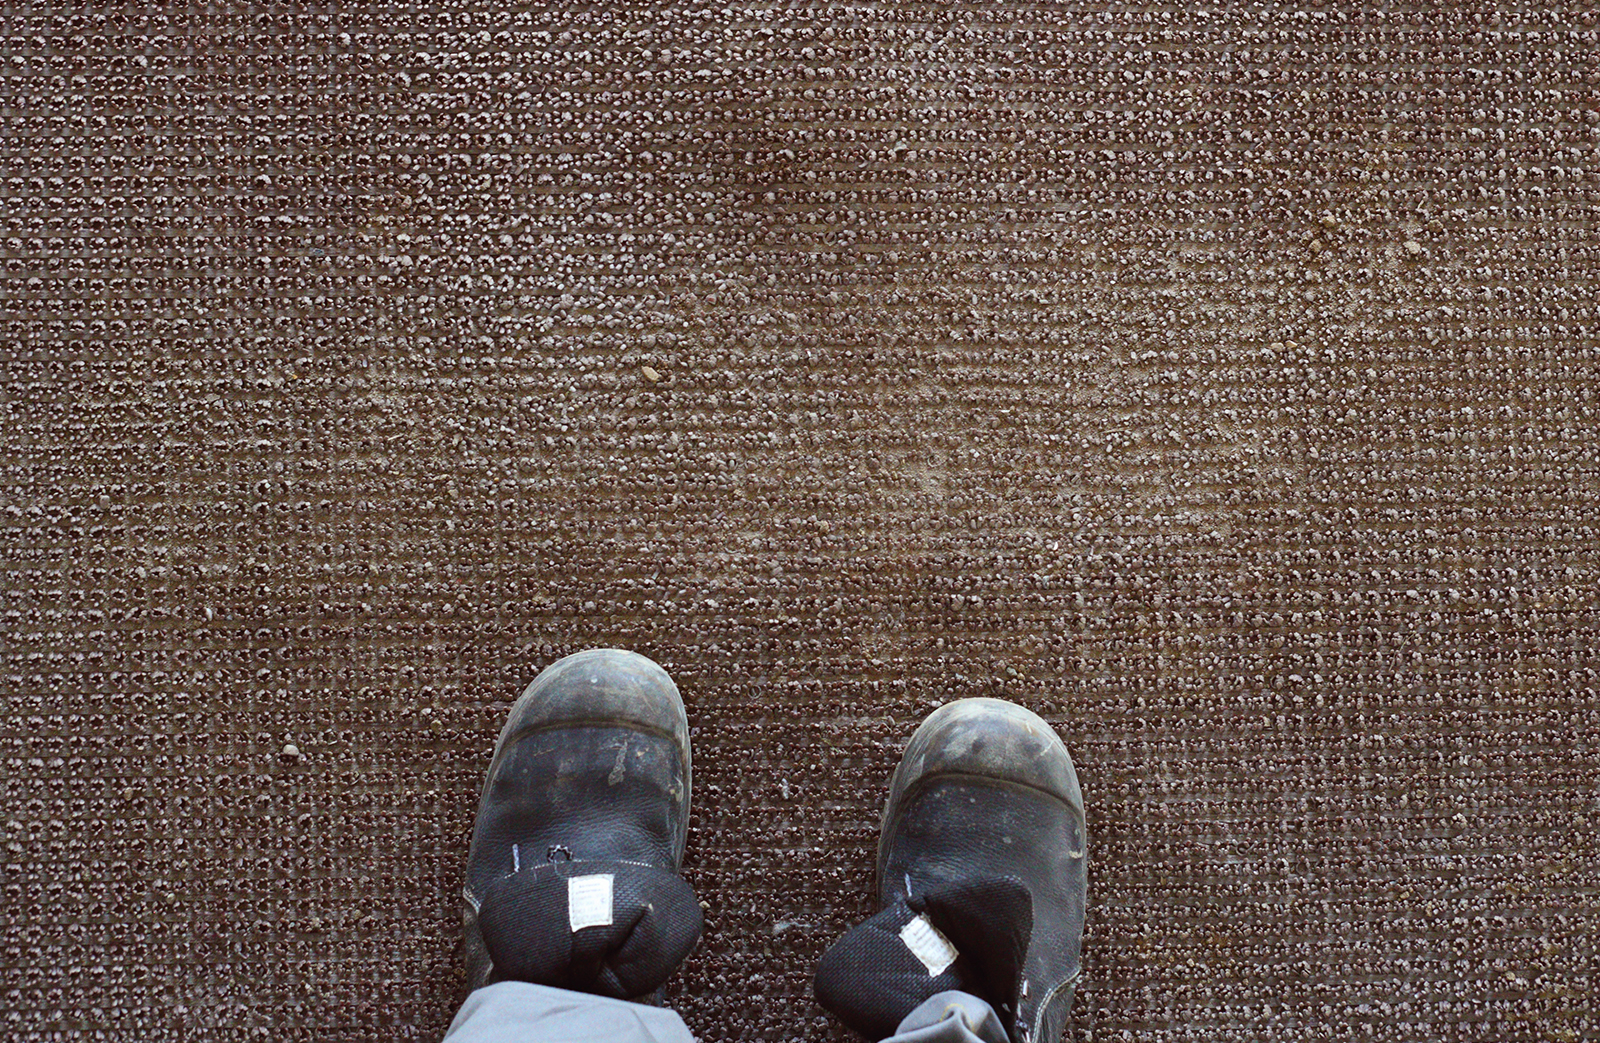 WINTER CARPET CLEANING SERVICES FOR NJ AND PA